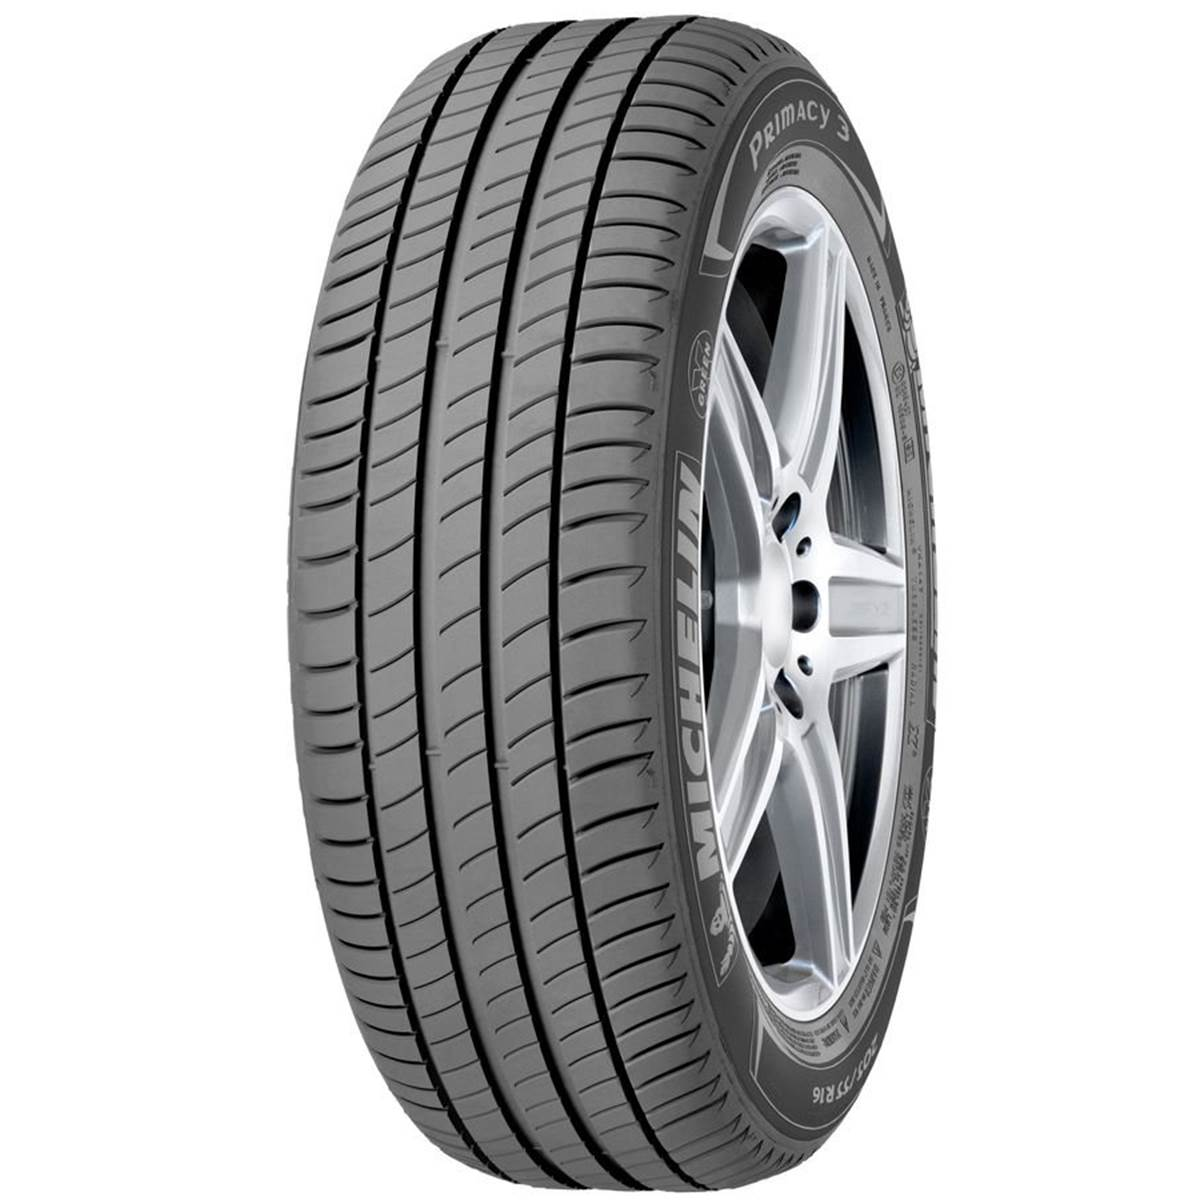 Pneu Michelin 225/45R17 91Y Primacy 3